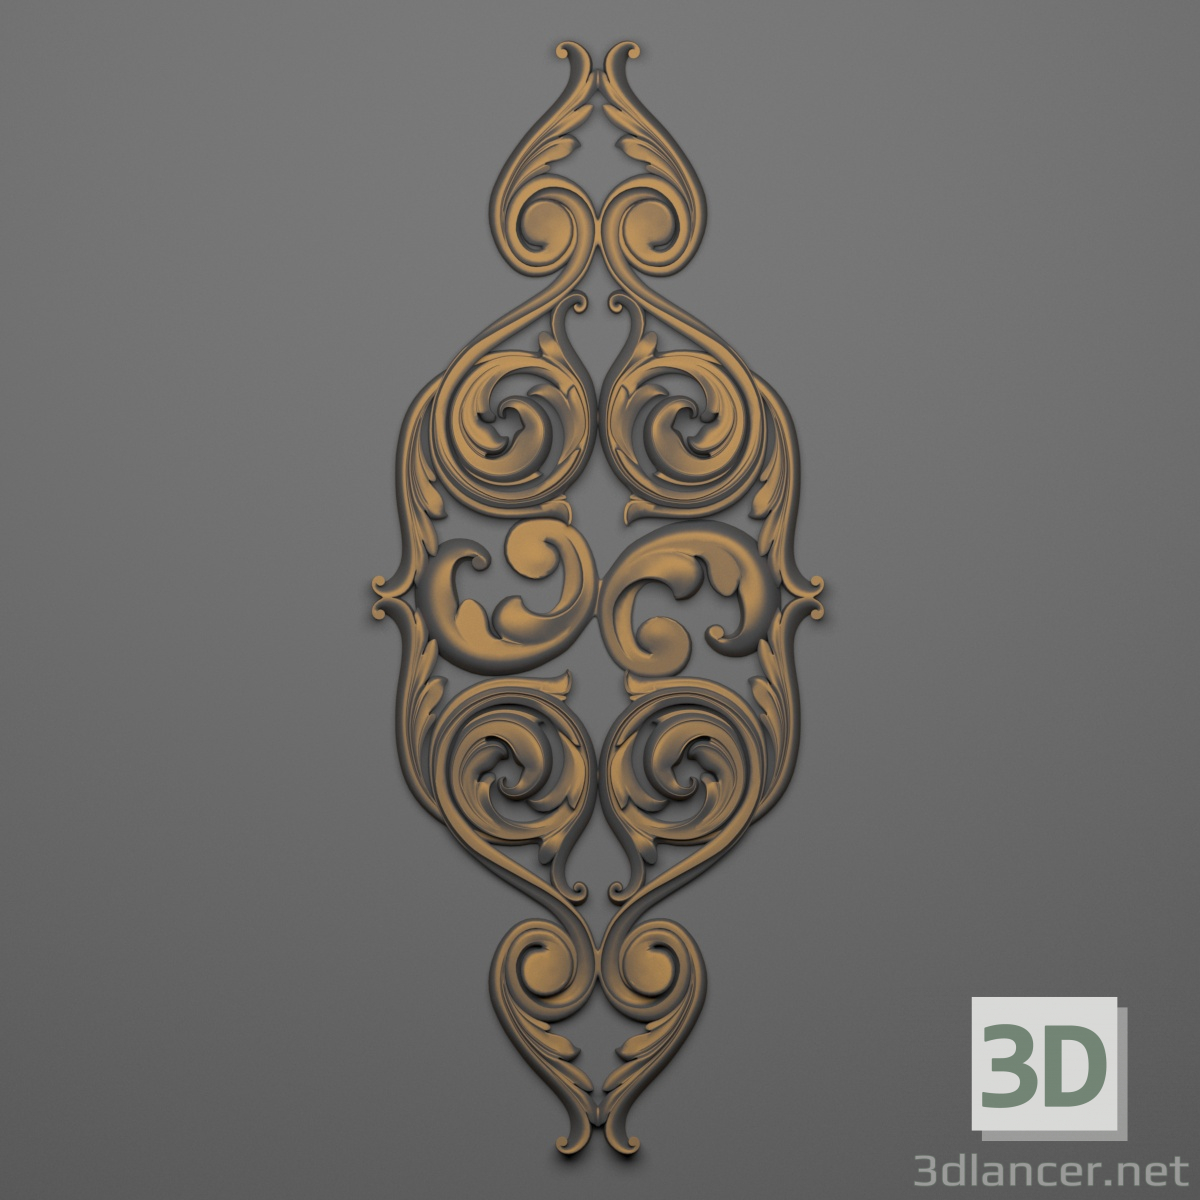 3d Decor 69 model buy - render